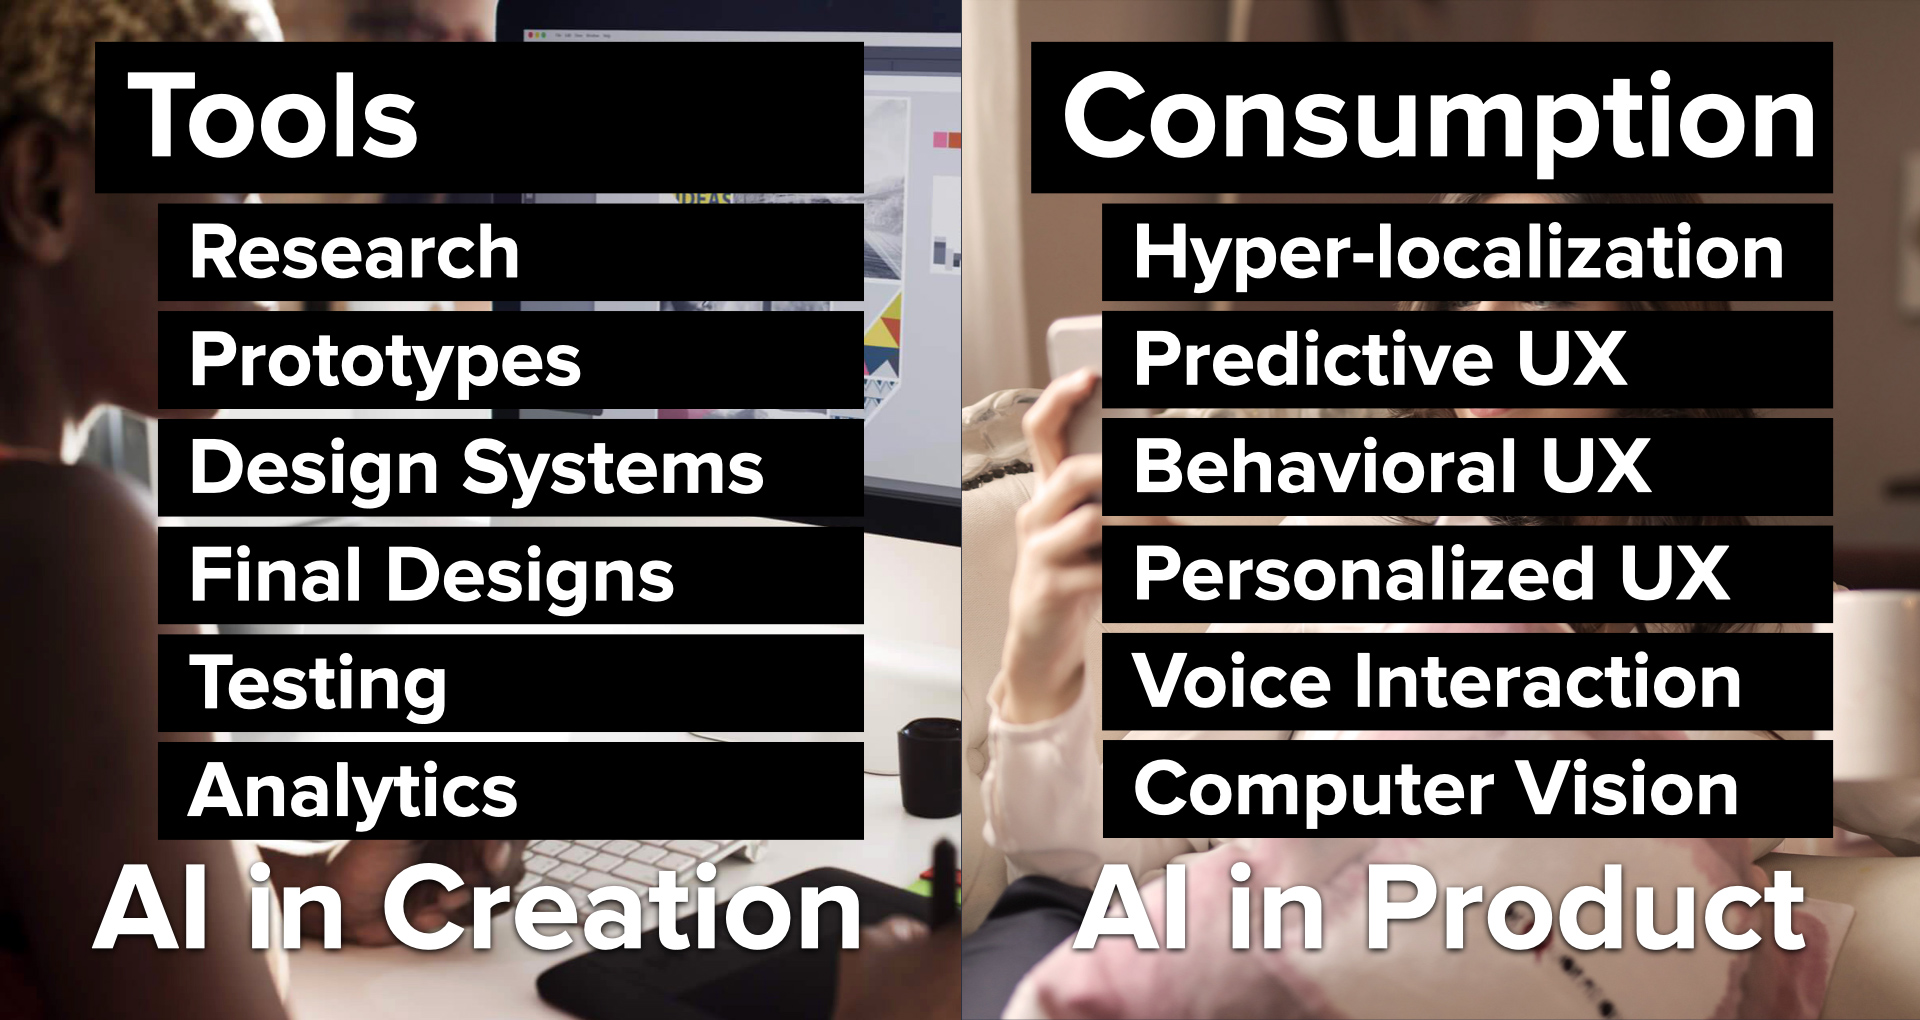 AI at the creation stage and at the consumption stage